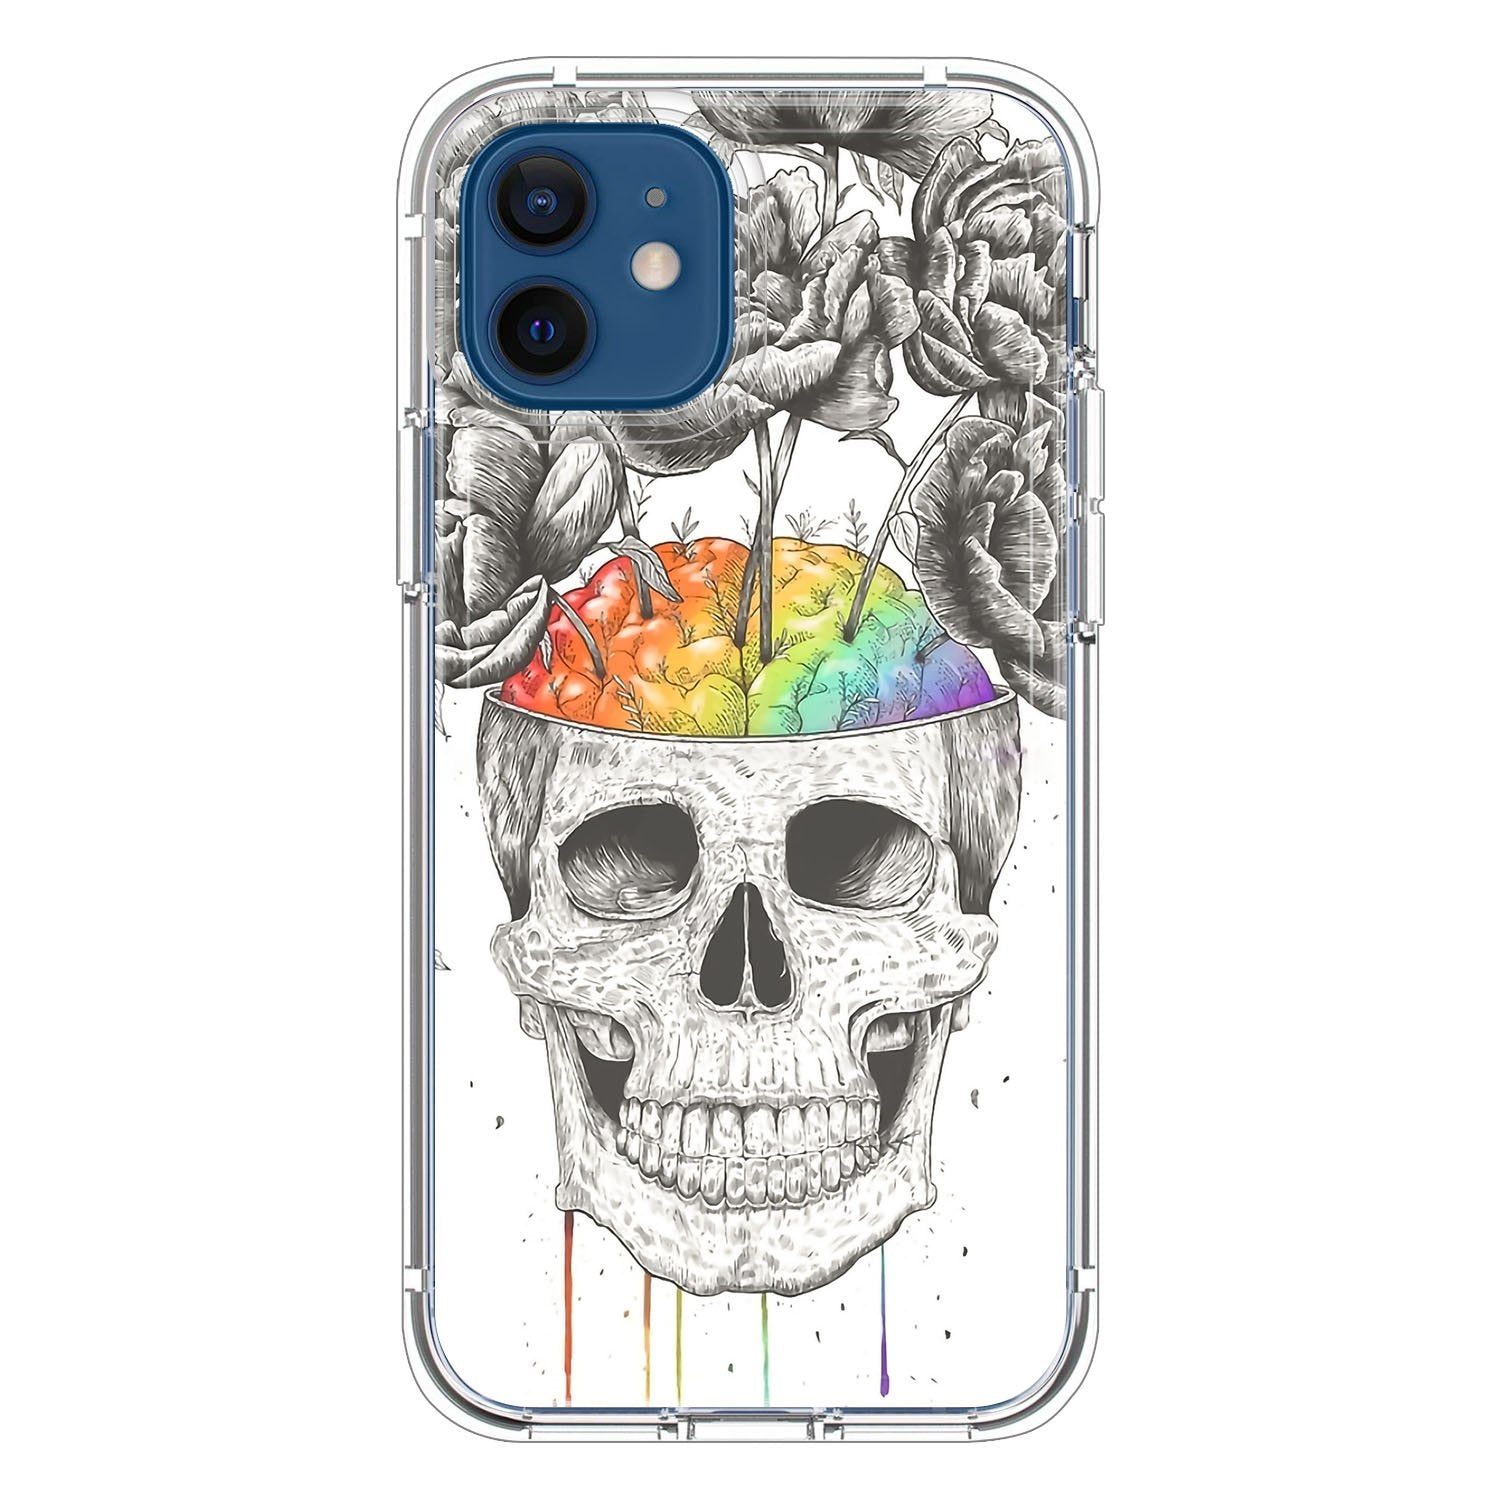 Skull with rainbow brains